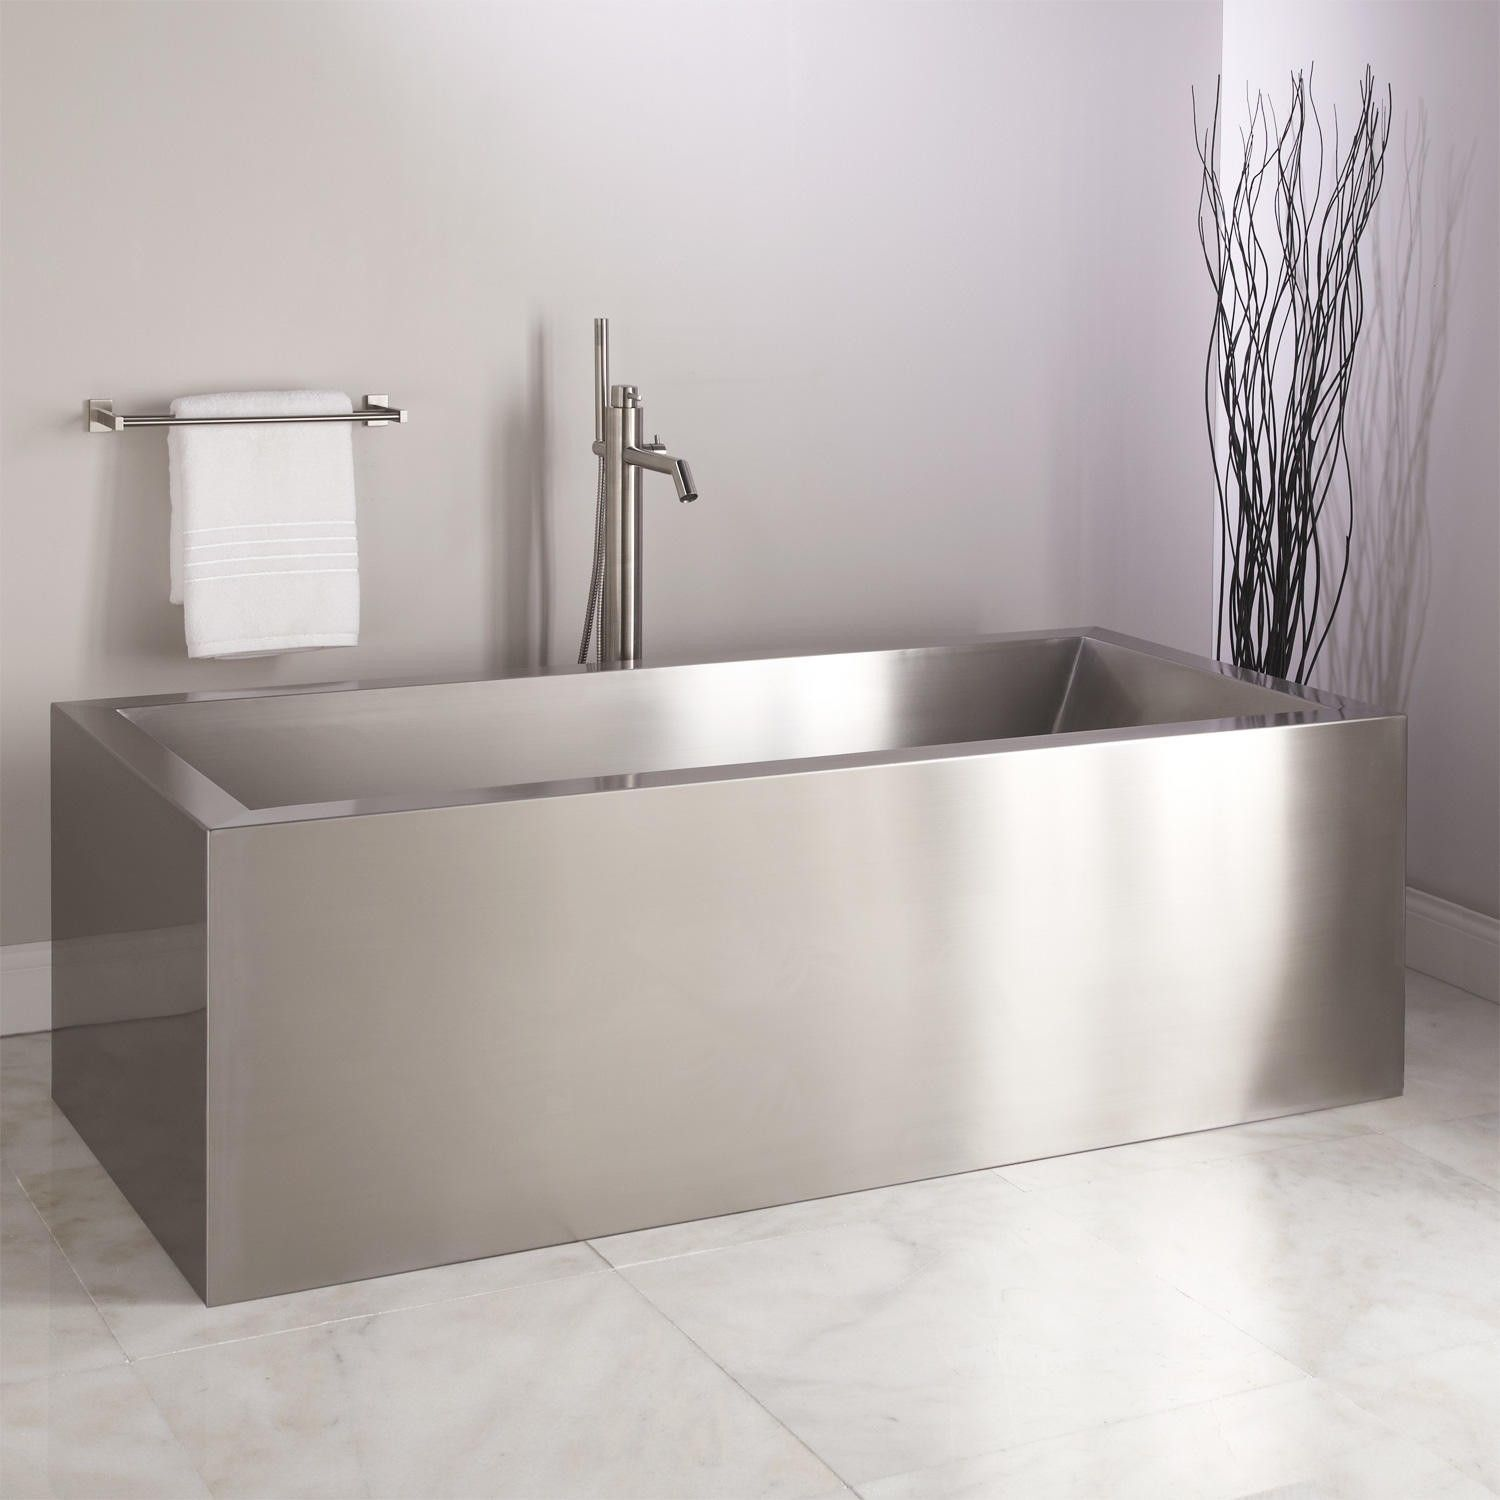 Magnificent Standard Bathroom Dimensions Uk Tiny Bathroom Vanities Toronto Canada Rectangular Big Bathroom Wall Mirrors Bathroom Wall Panelling Old Master Bath Shower Dimensions BlueVintage Style Bathtubs 1000  Images About Bathtubs On Pinterest | Soaking Tubs, Acrylics ..